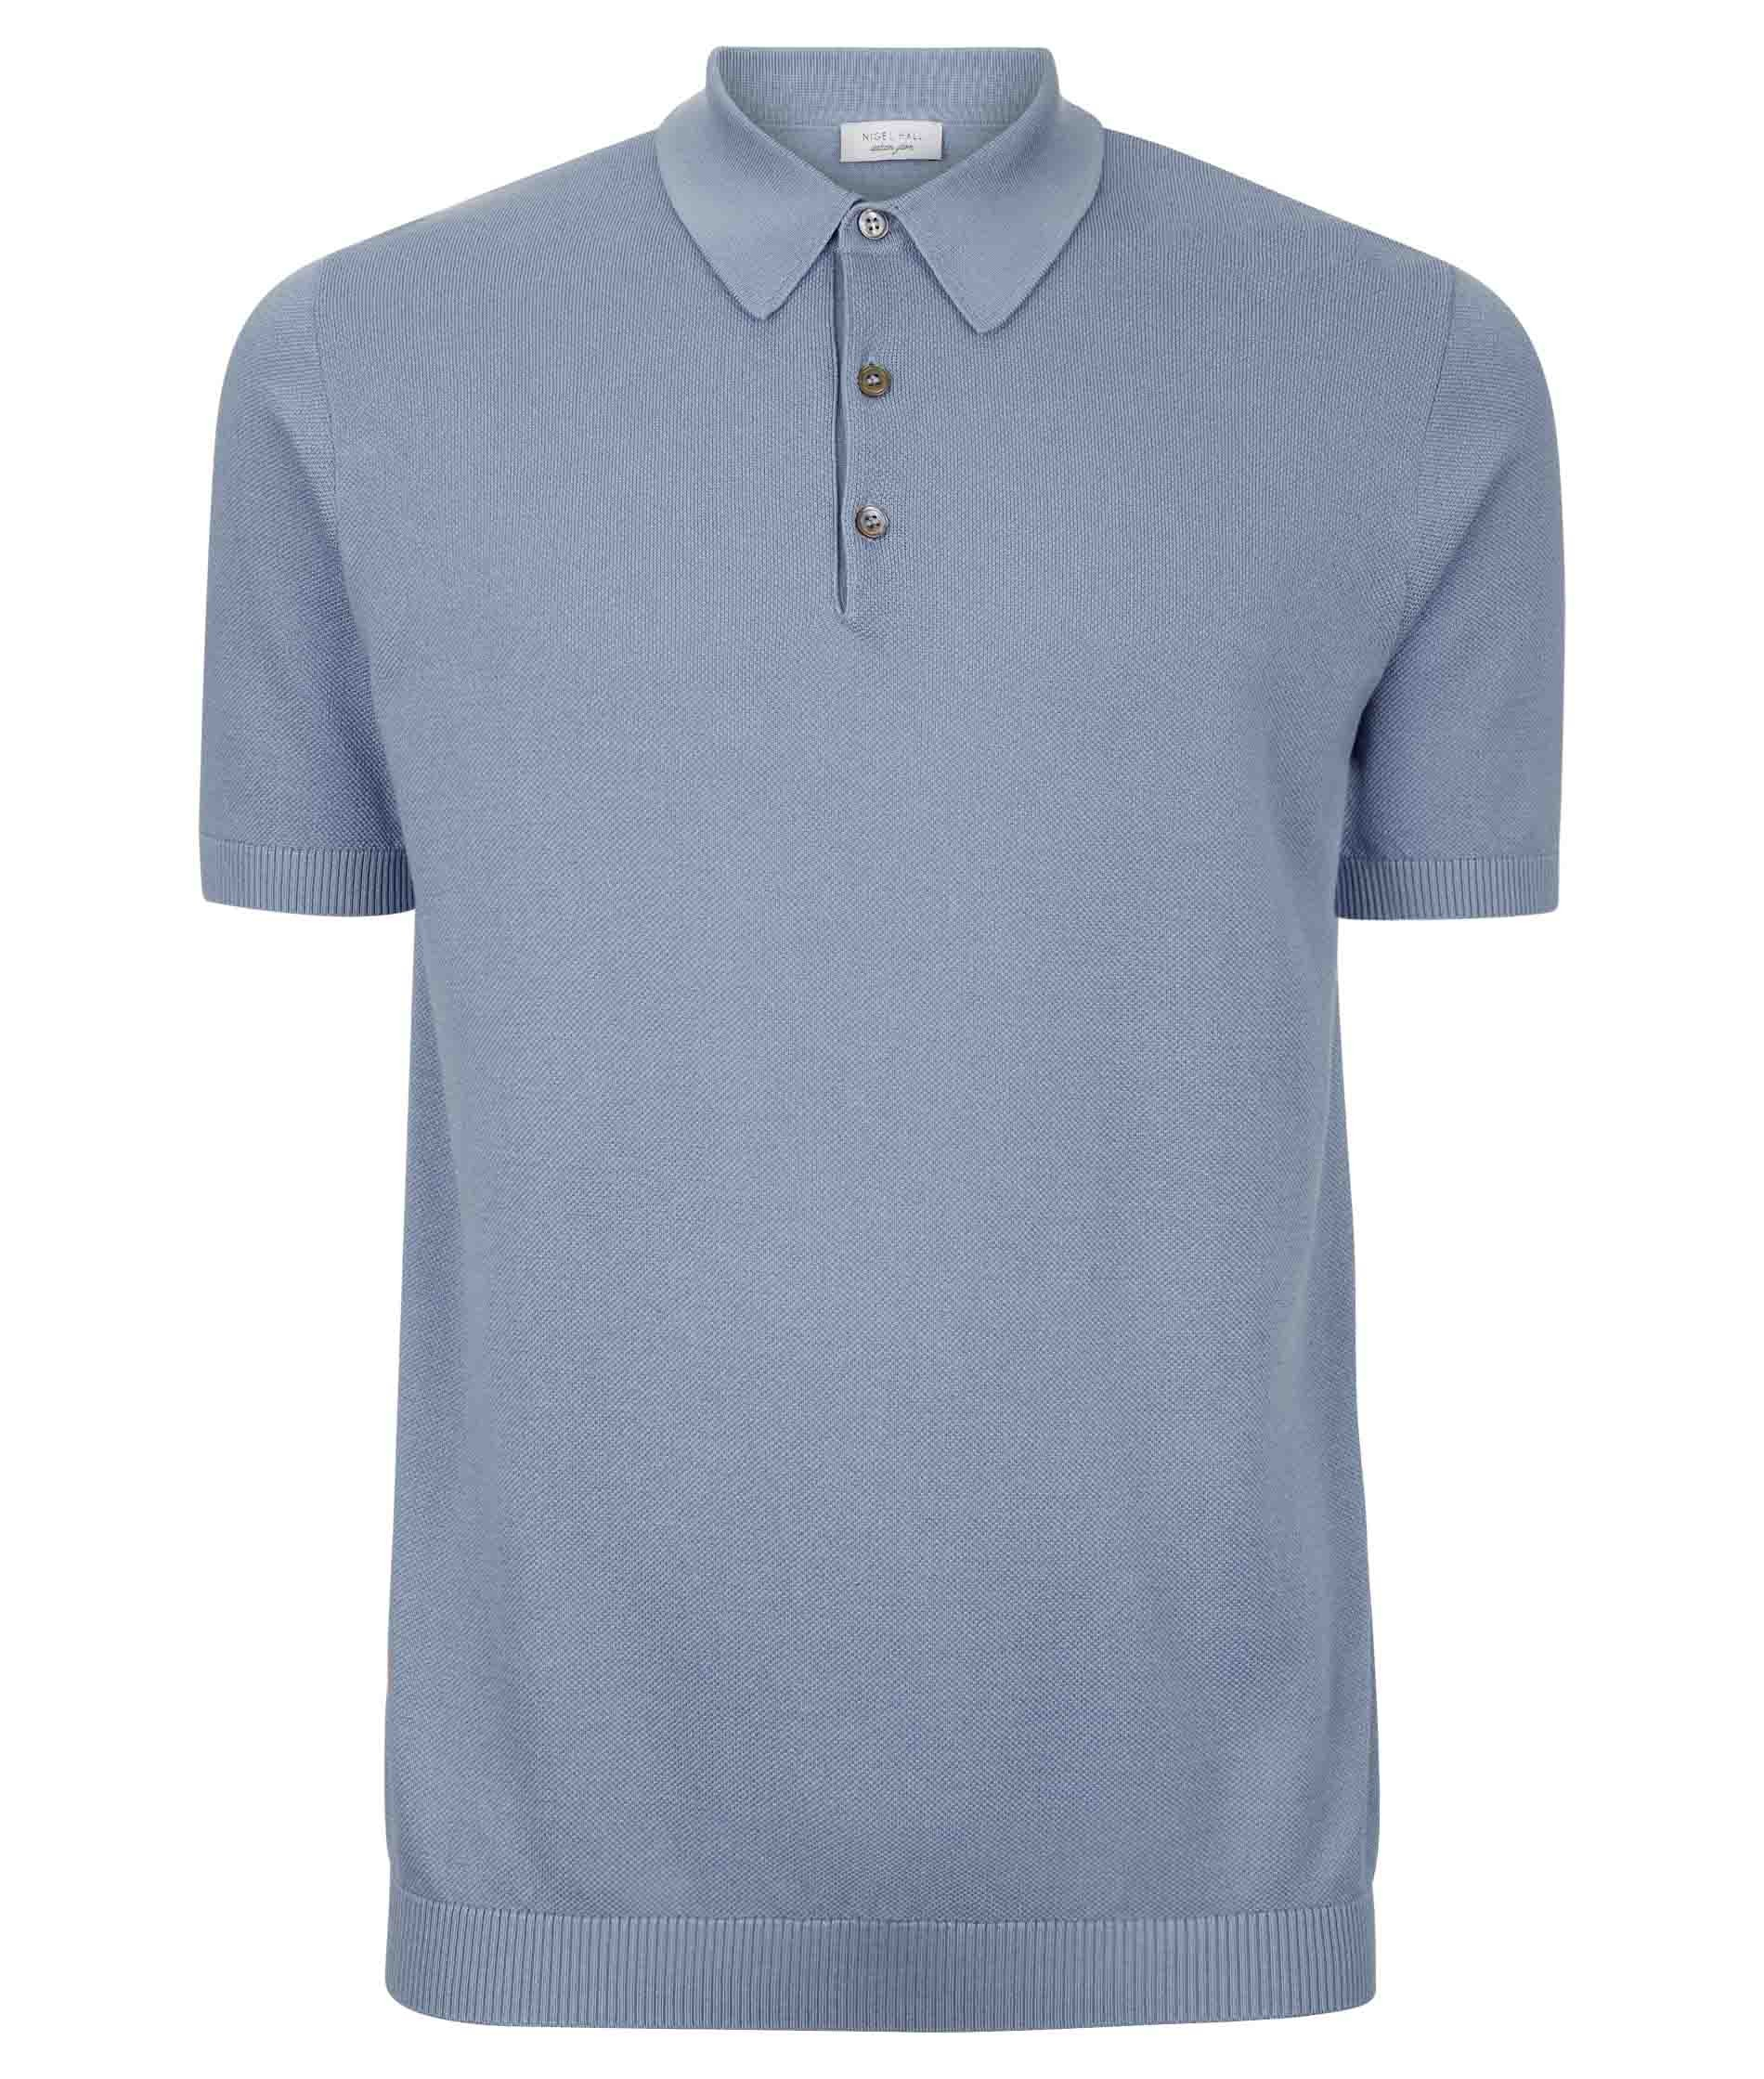 Nigel Hall Pale Blue Short Sleeved Textured Cotton Polo Shirt (Can)